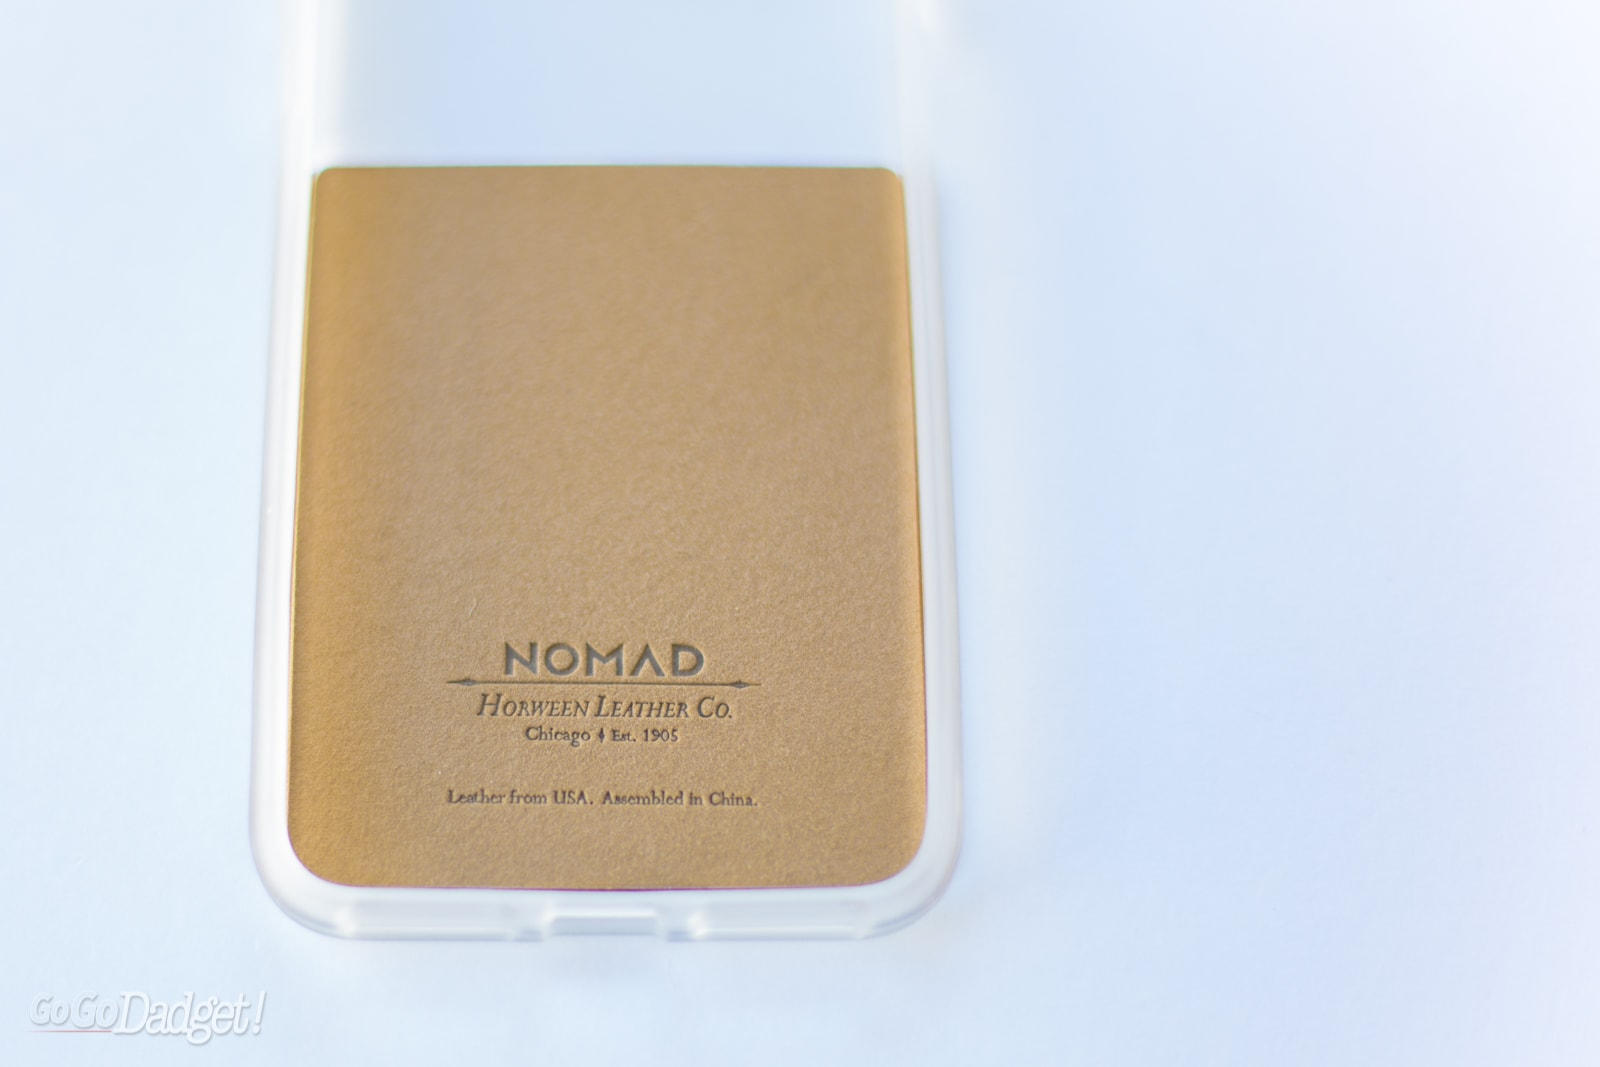 reputable site fb46f cea3a Nomad iPhone 8 Plus Clear Case: Quick Review | GoGoDadget